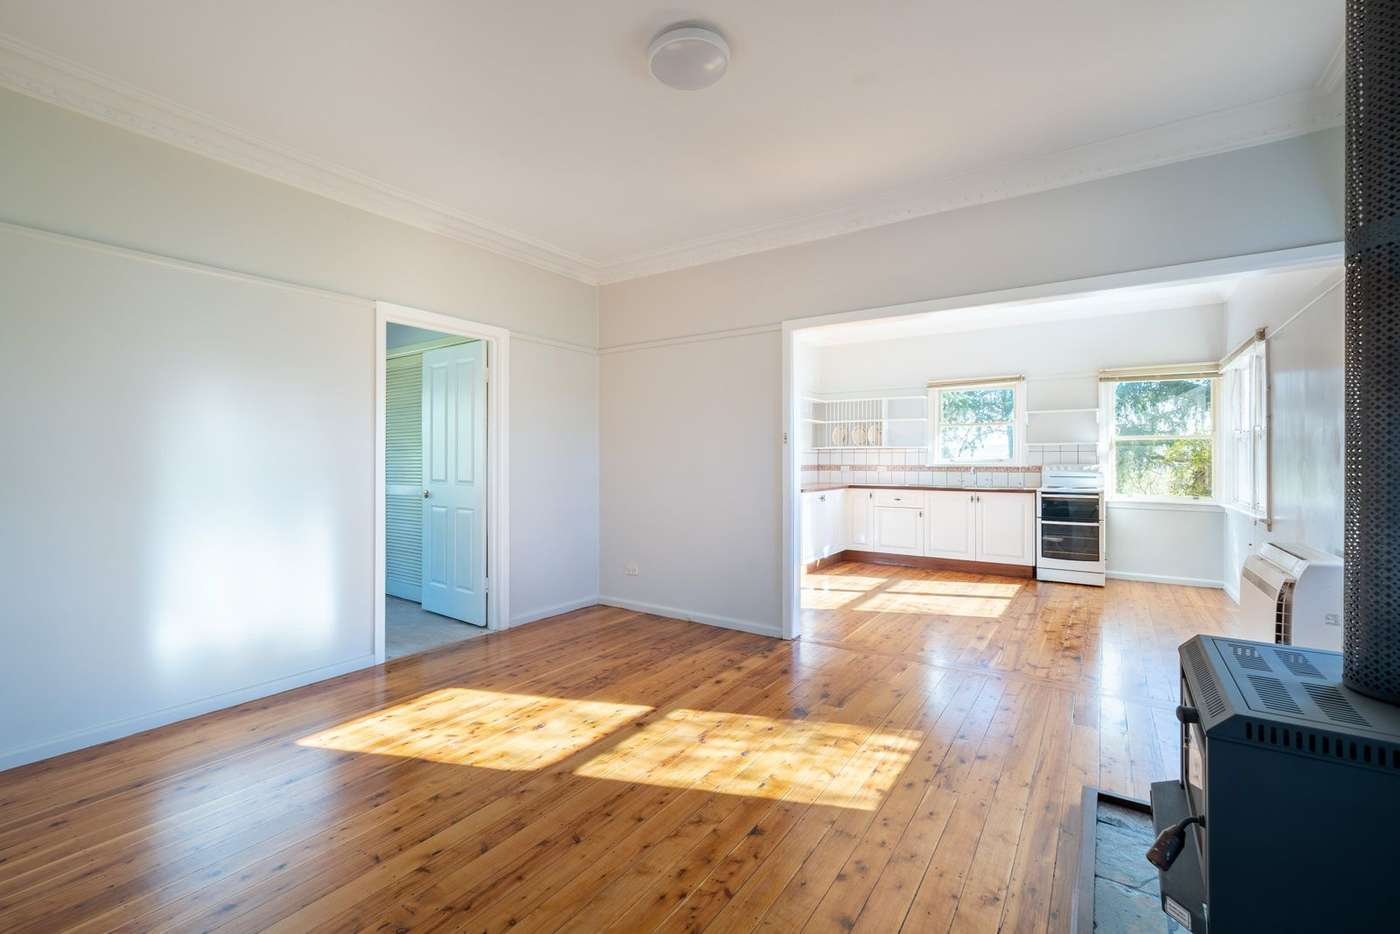 Seventh view of Homely house listing, 472 White Rock Road, White Rock NSW 2795